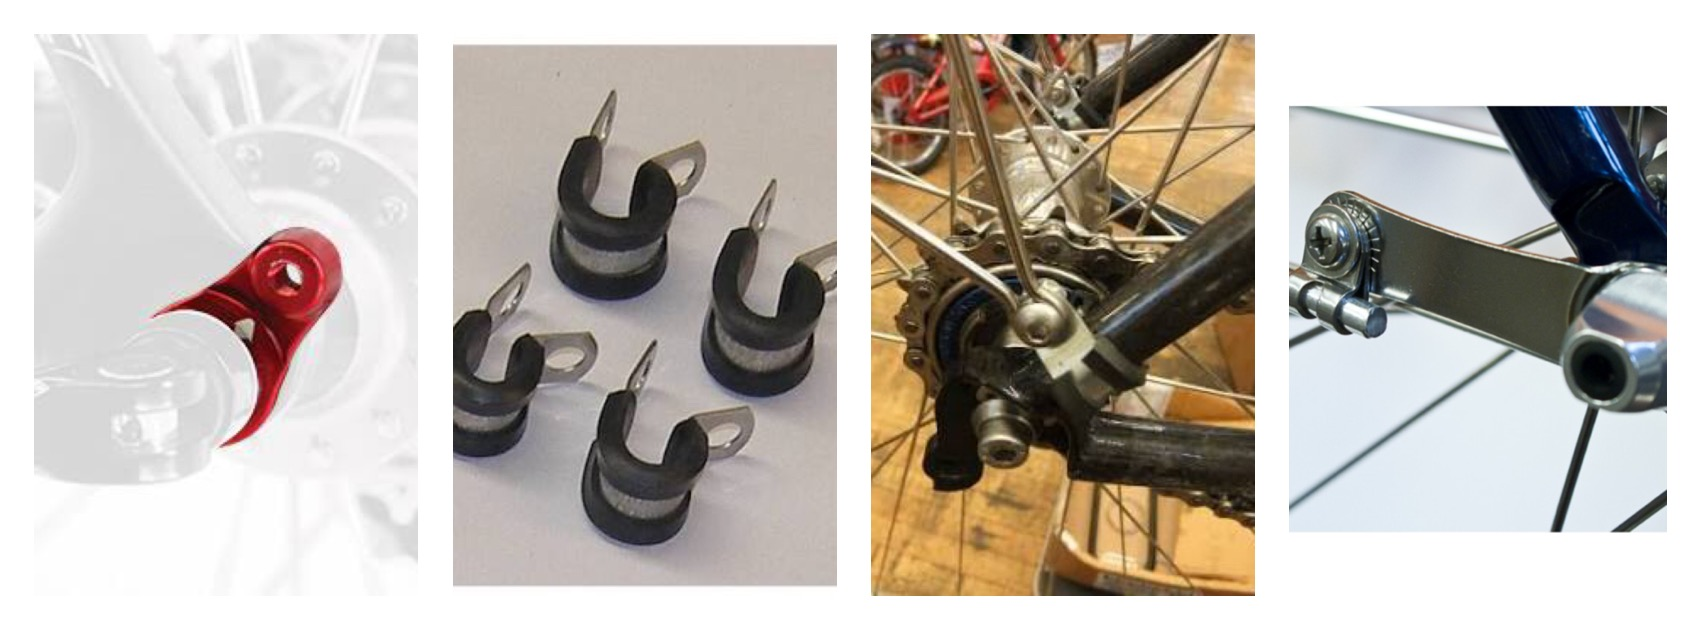 4 Bike Mudguard Eyelet Nuts /& Bolts For Fitting Cycle Mud Guards